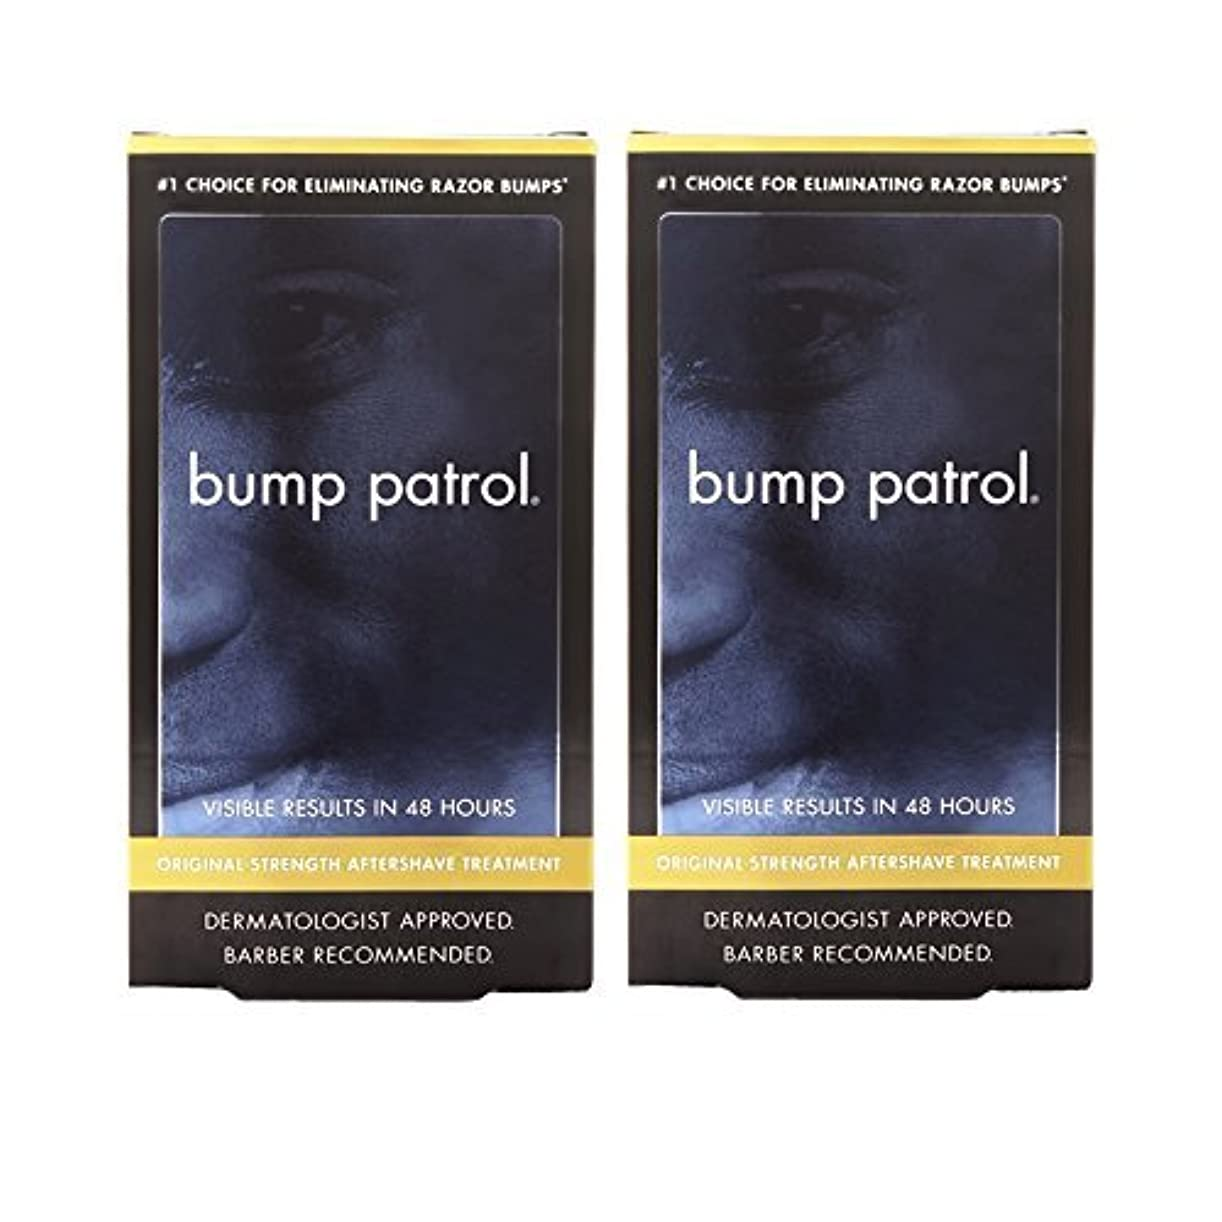 羨望累積マイクロプロセッサBump Patrol Dermatologist Approved Original Strength Aftershave Treatment (2 oz) 2 Pack [並行輸入品]